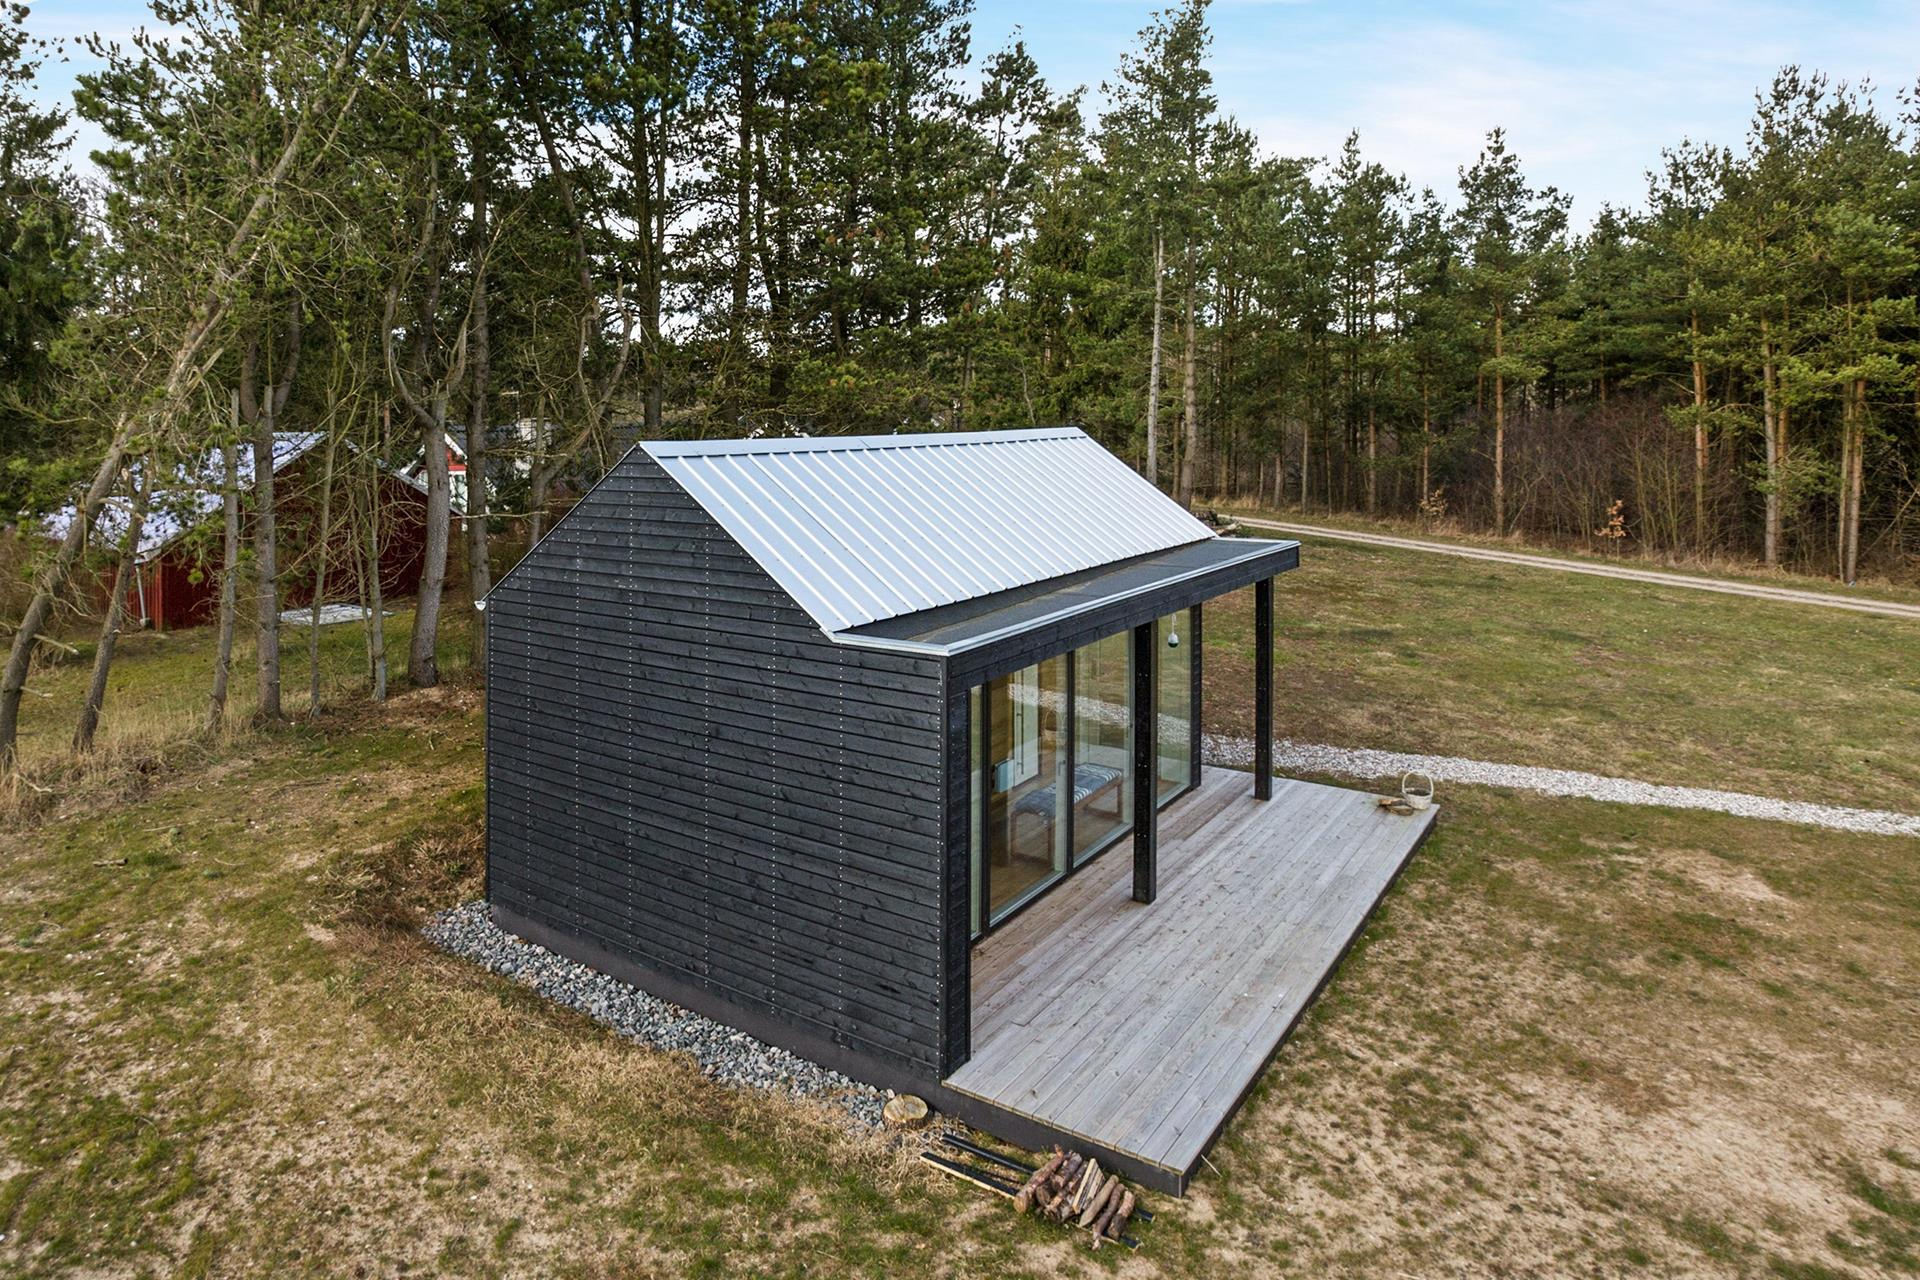 Gallery Scandinavian Modern Tiny House Simon Steffensen